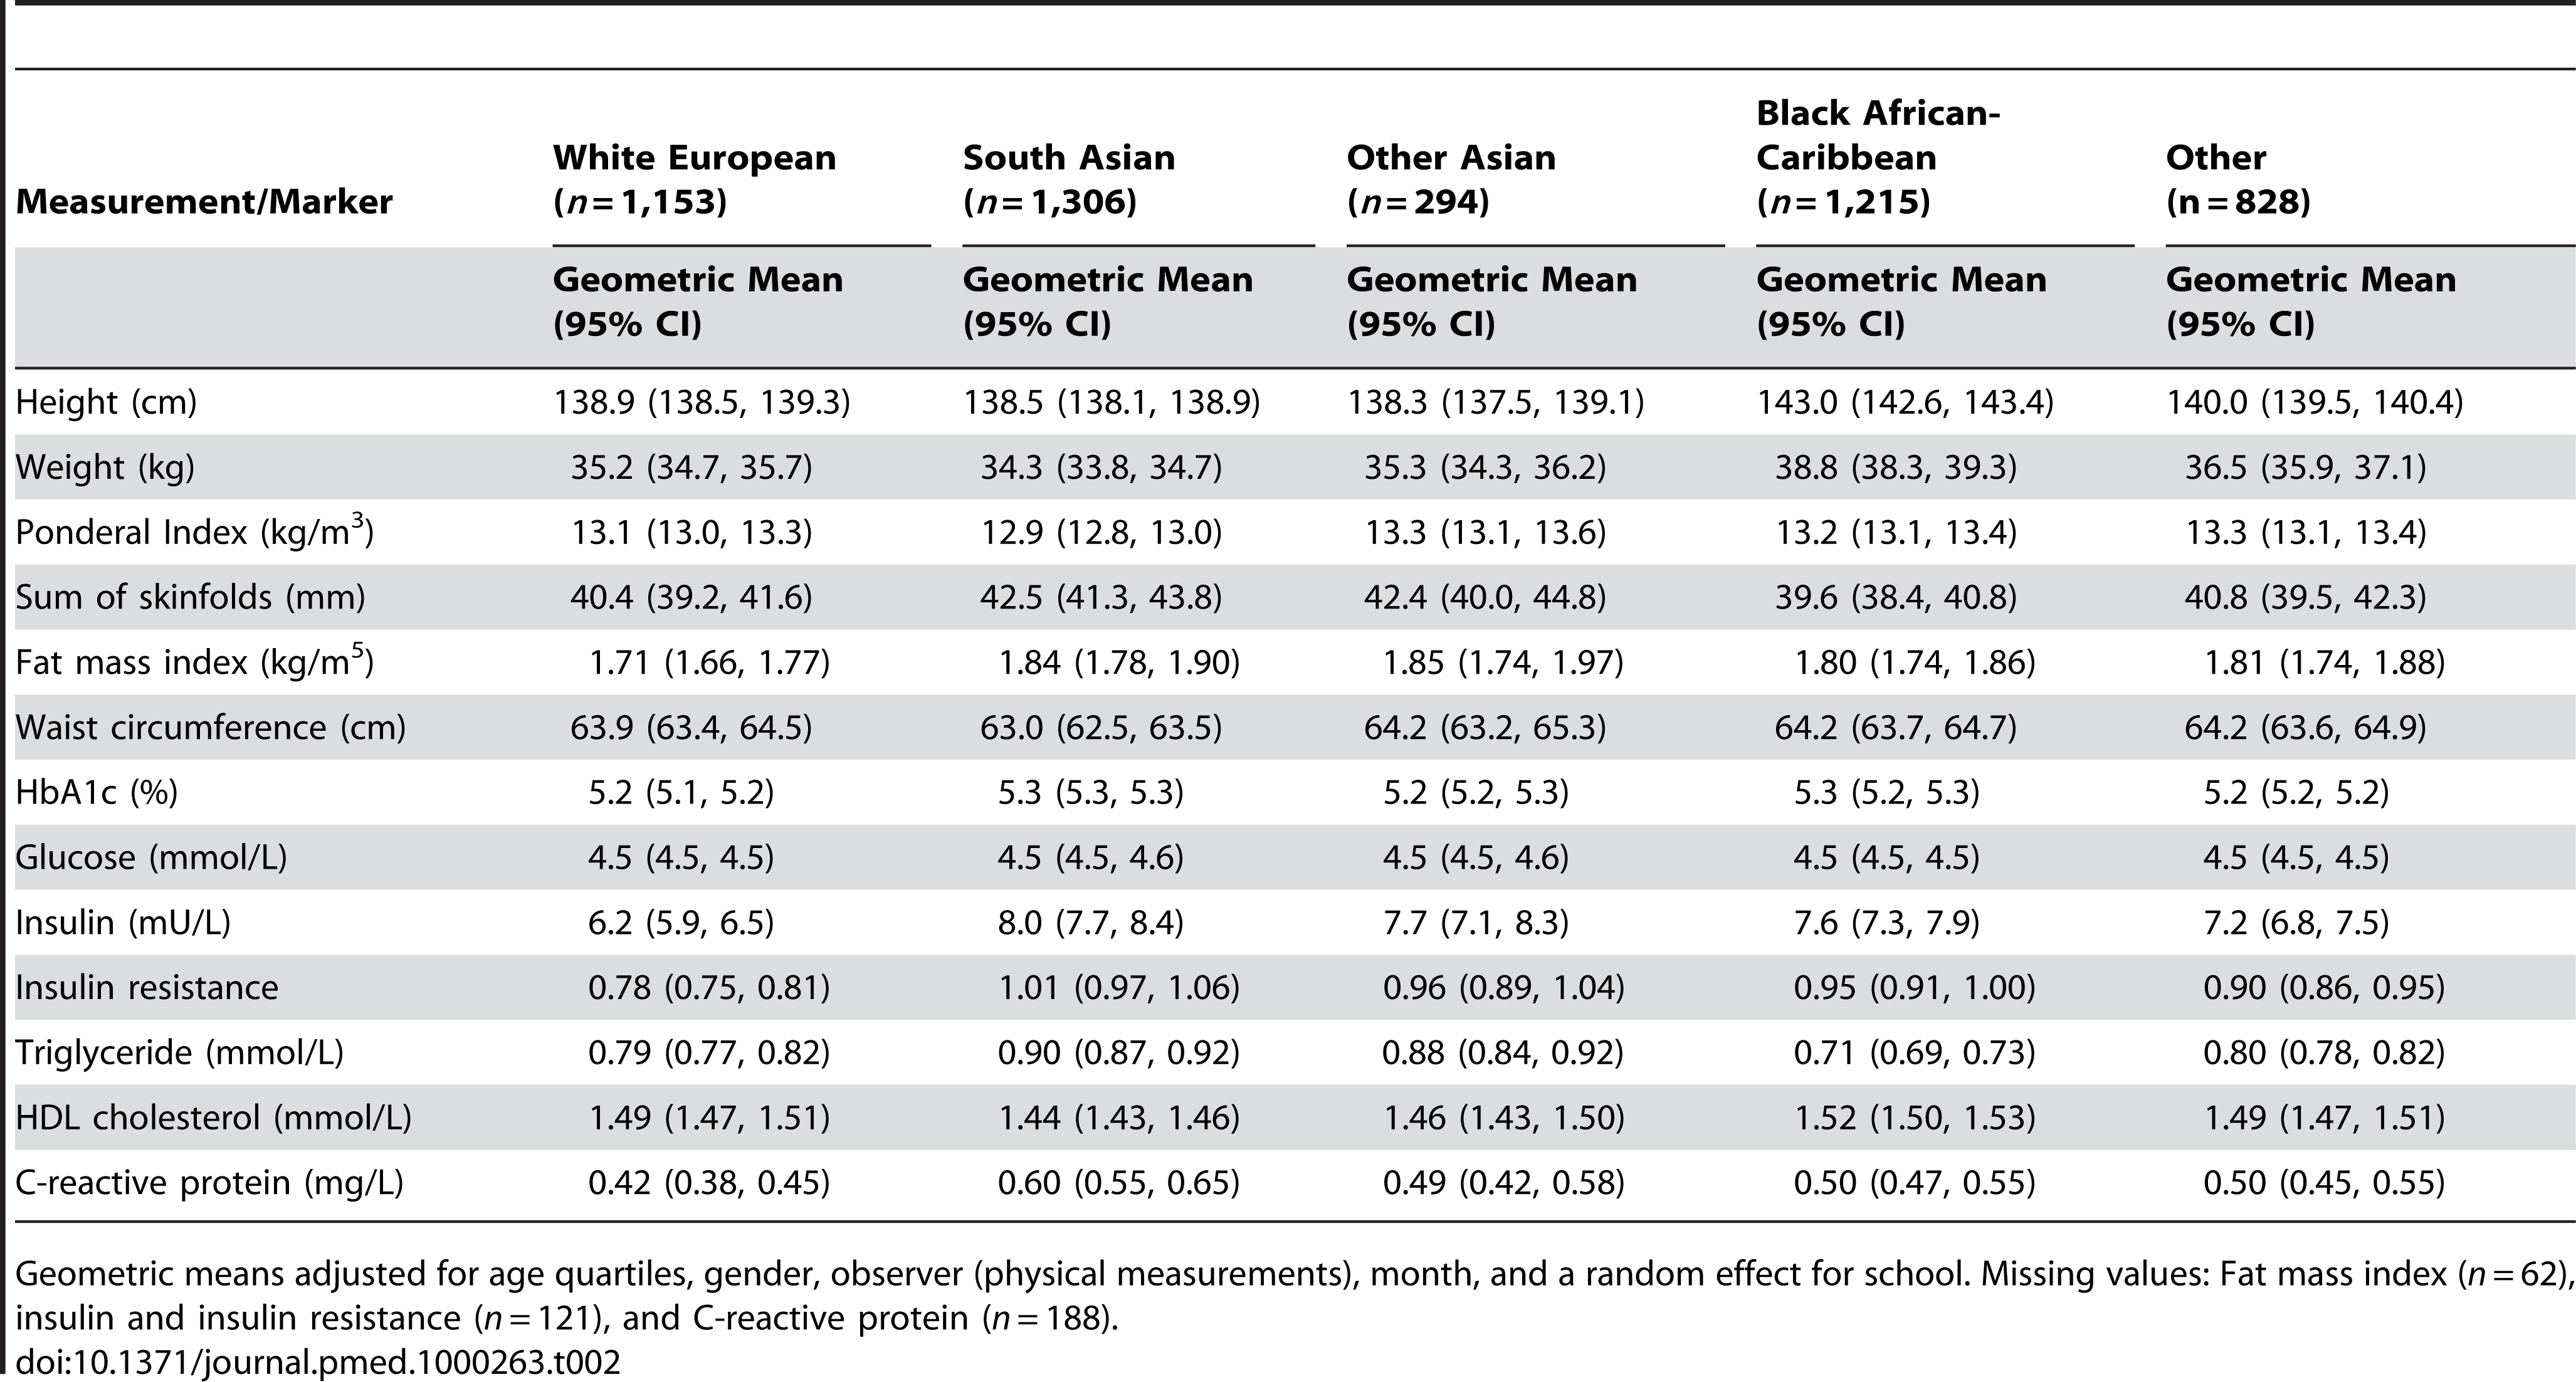 Physical measurements and blood markers: By ethnic group.